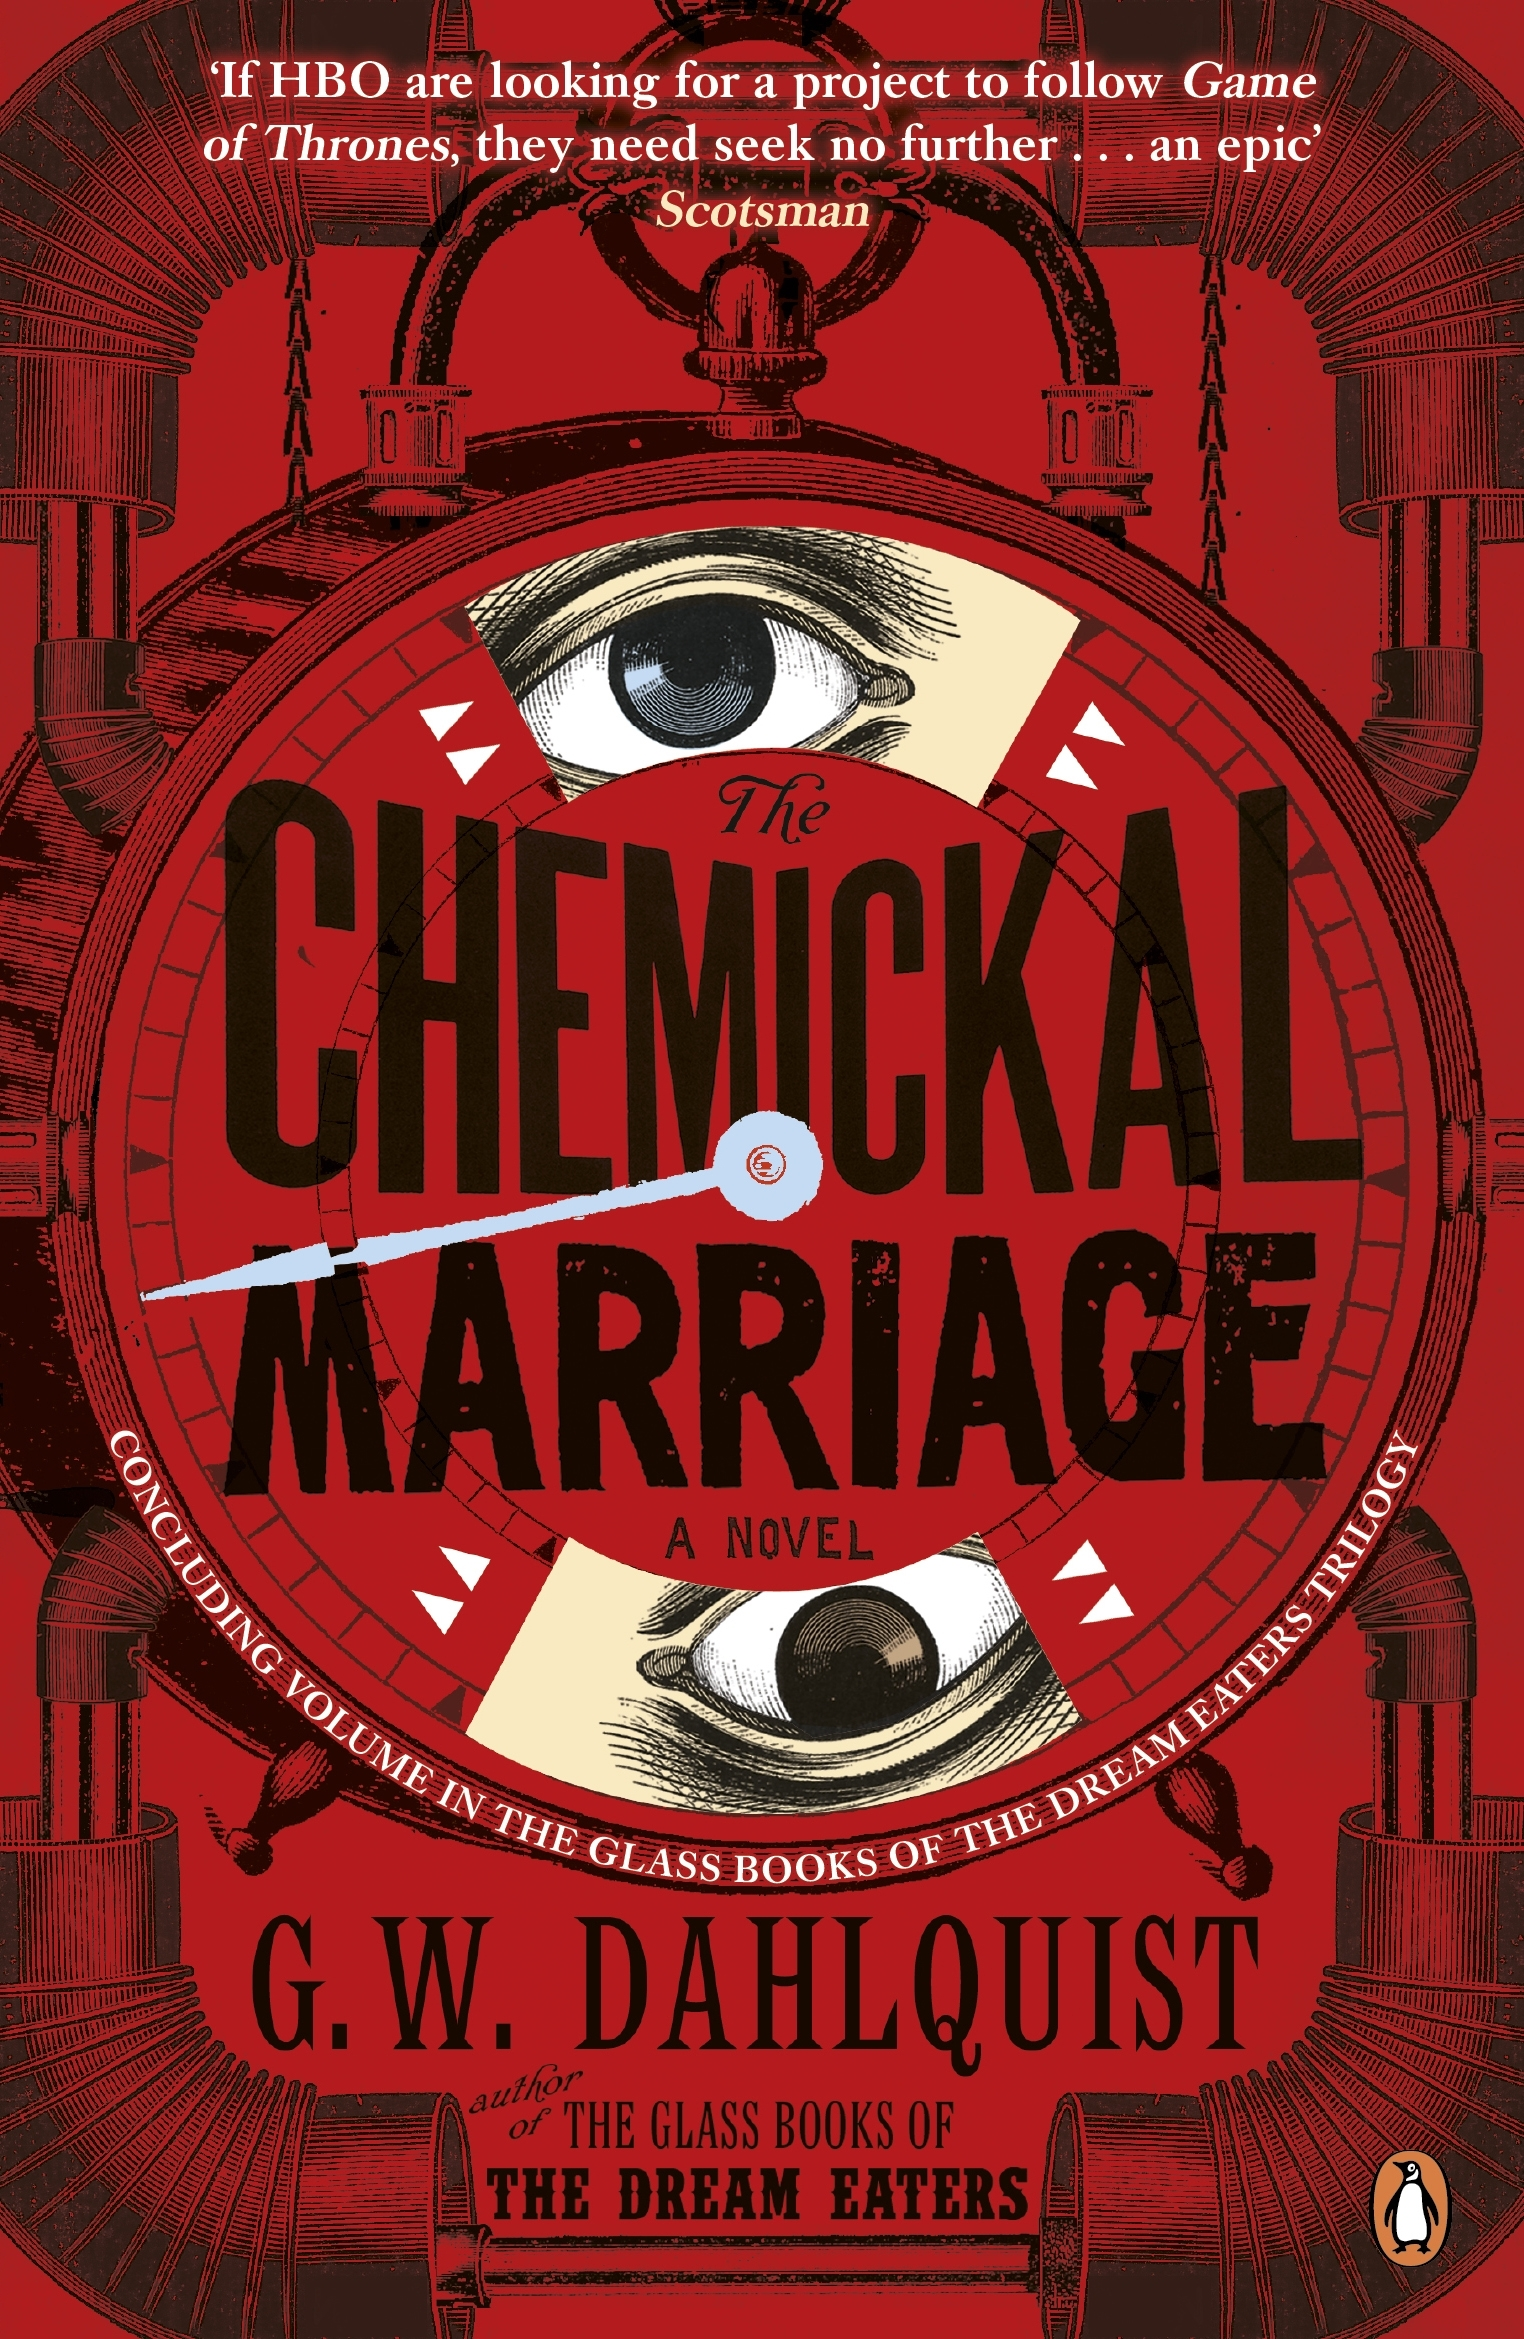 the chemickal marriage by g w dahlquist   penguin books